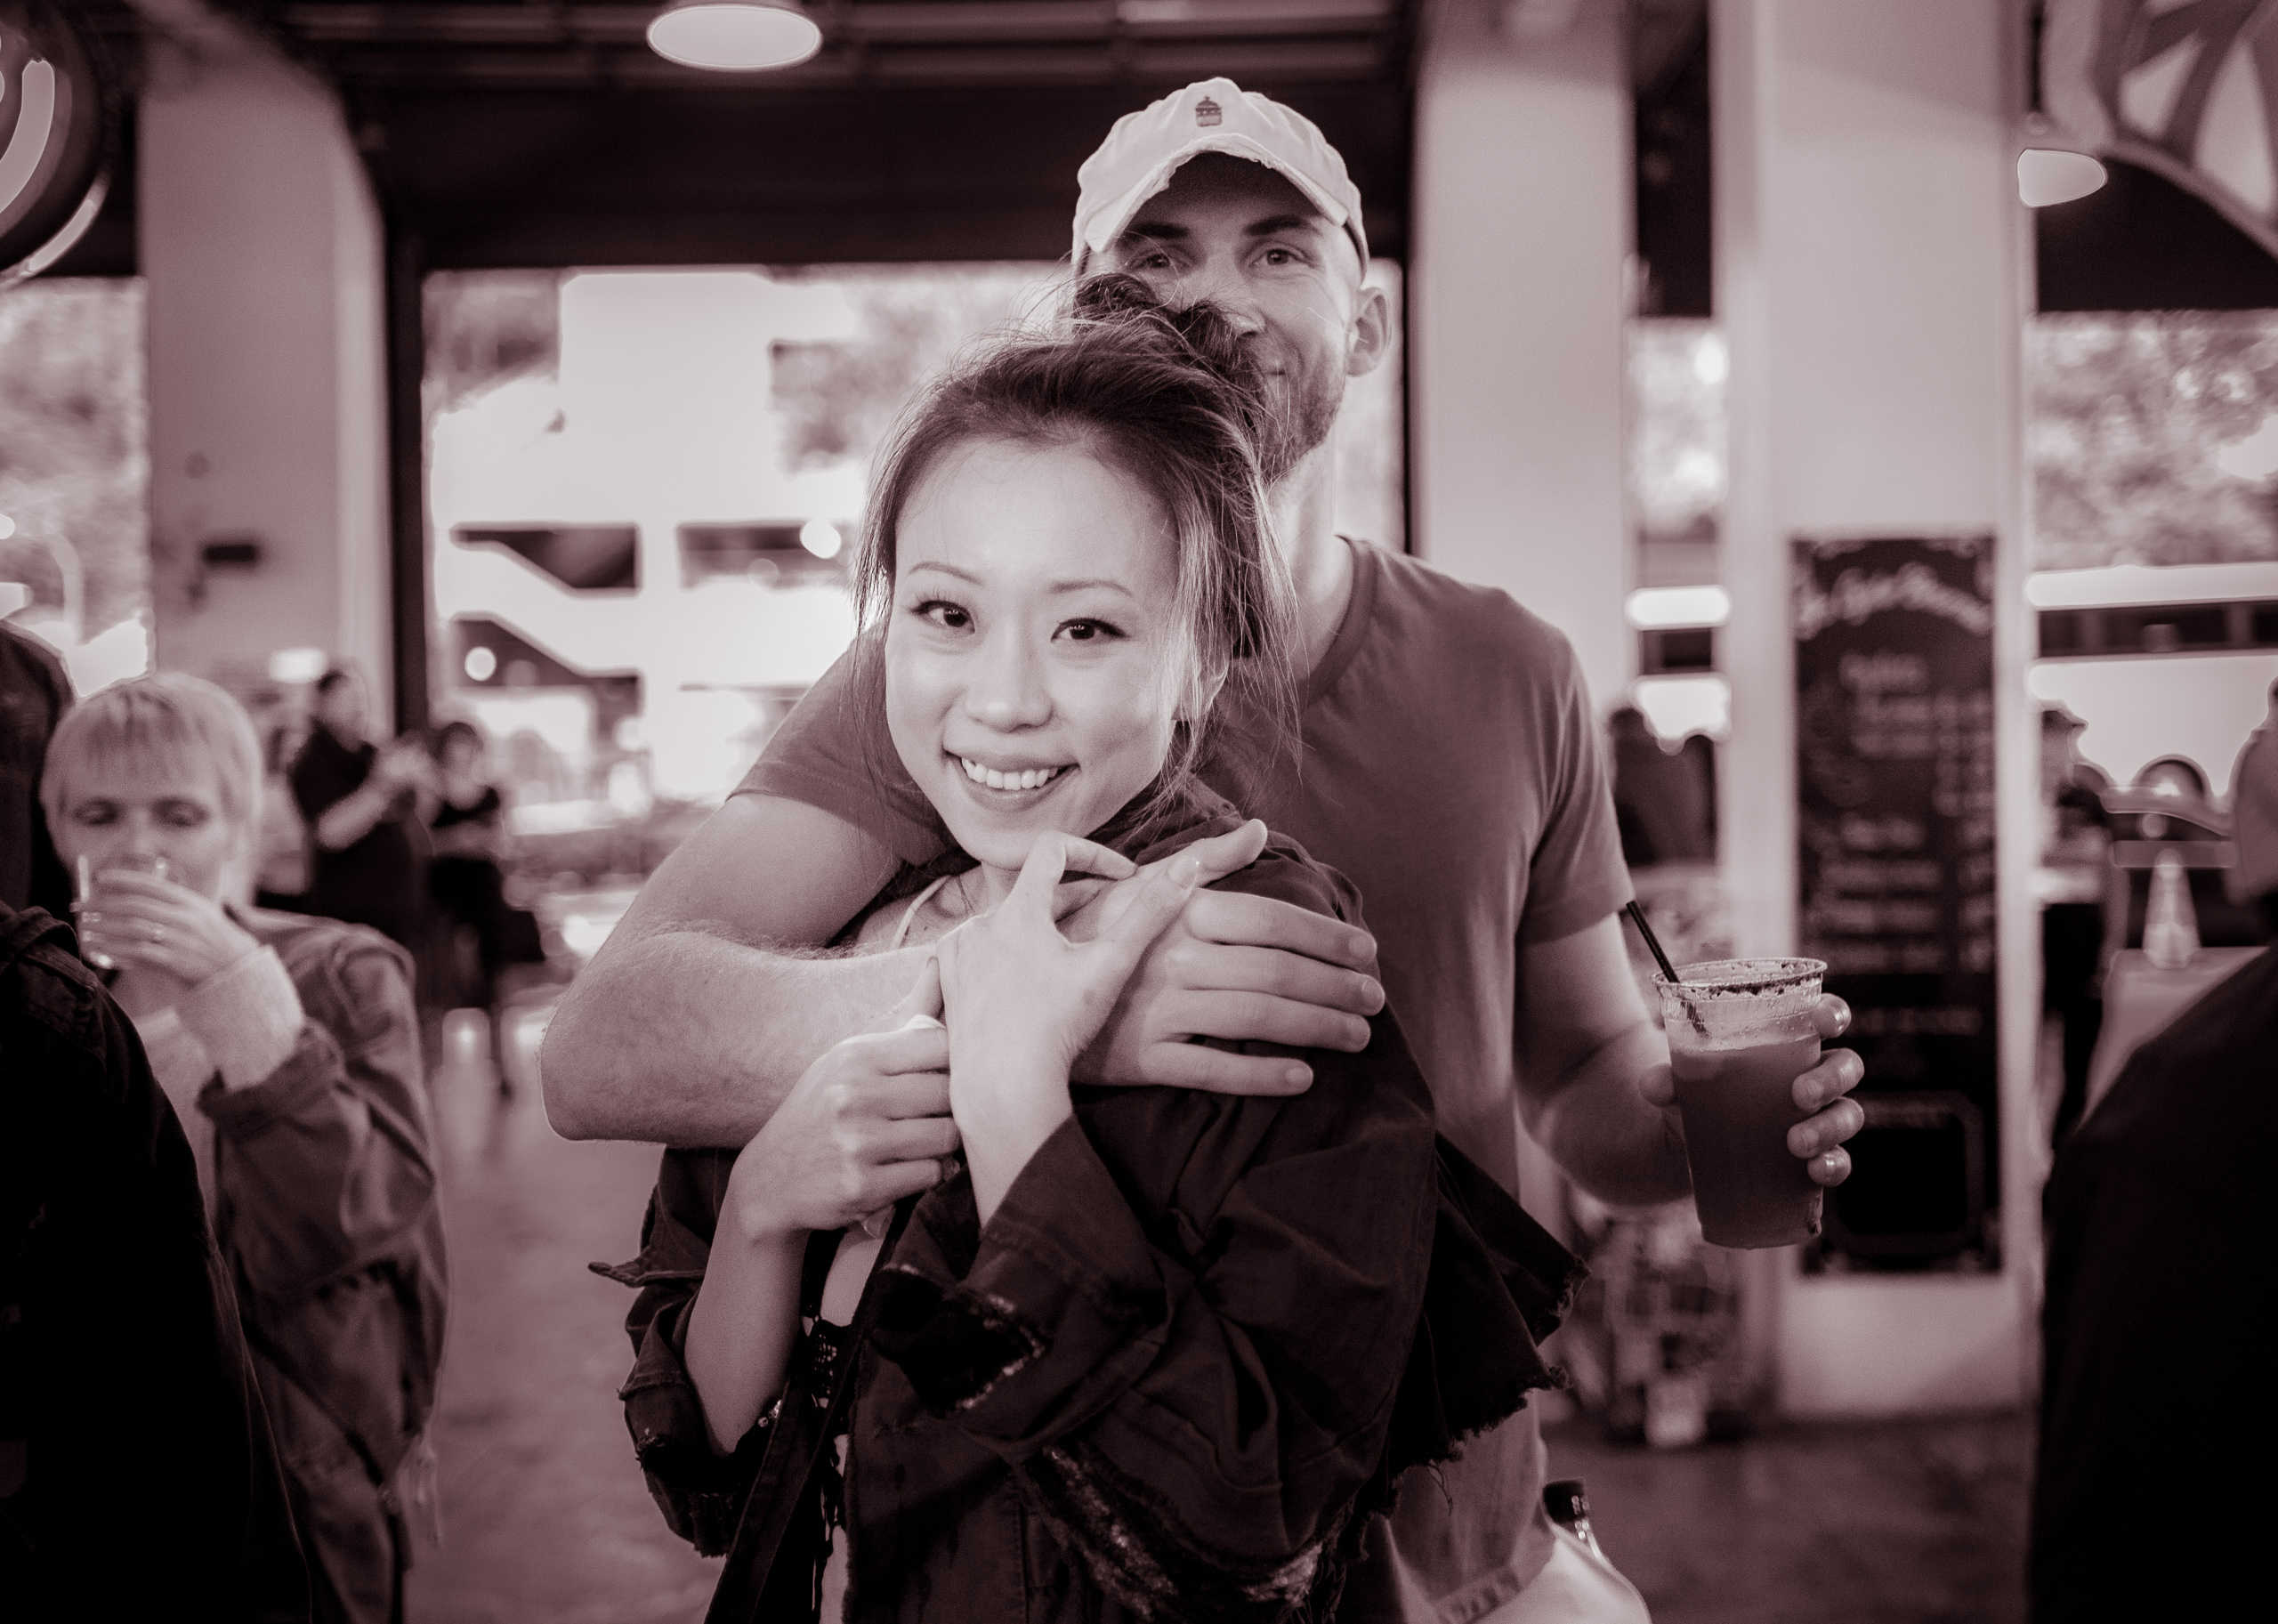 A couple embraces and sways to the music of The Mudbug Brass Band at the DTLA Oyster Festival at Grand Central Market in Downtown Los Angeles